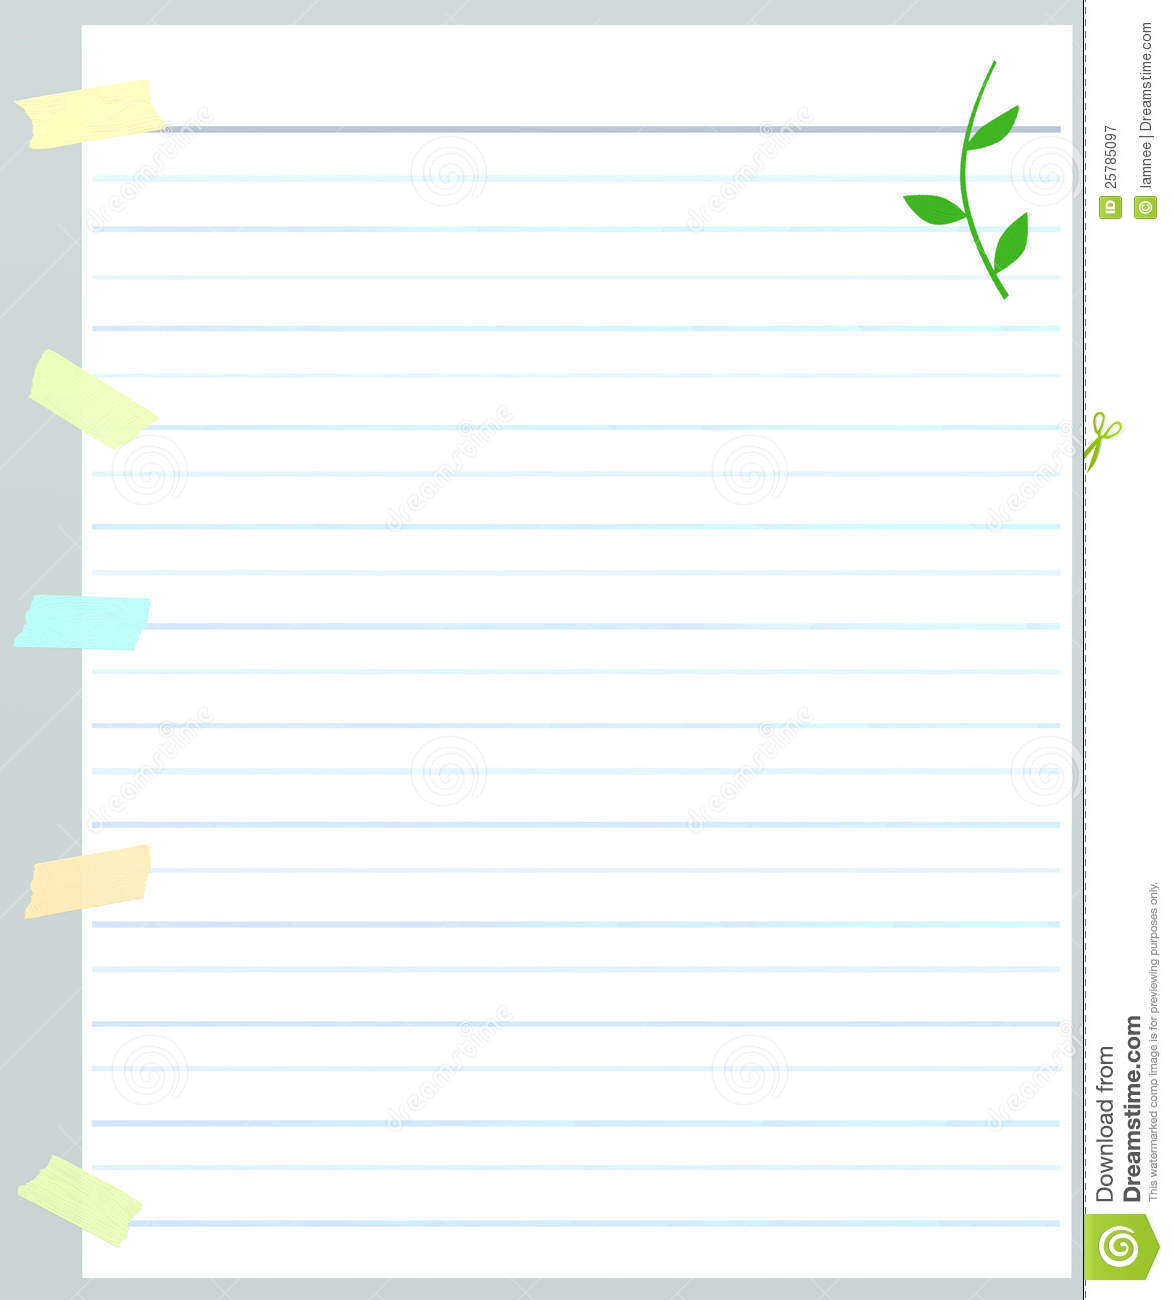 Charming A Sheet Of Lined Paper With Masking Tape Throughout Download Lined Paper